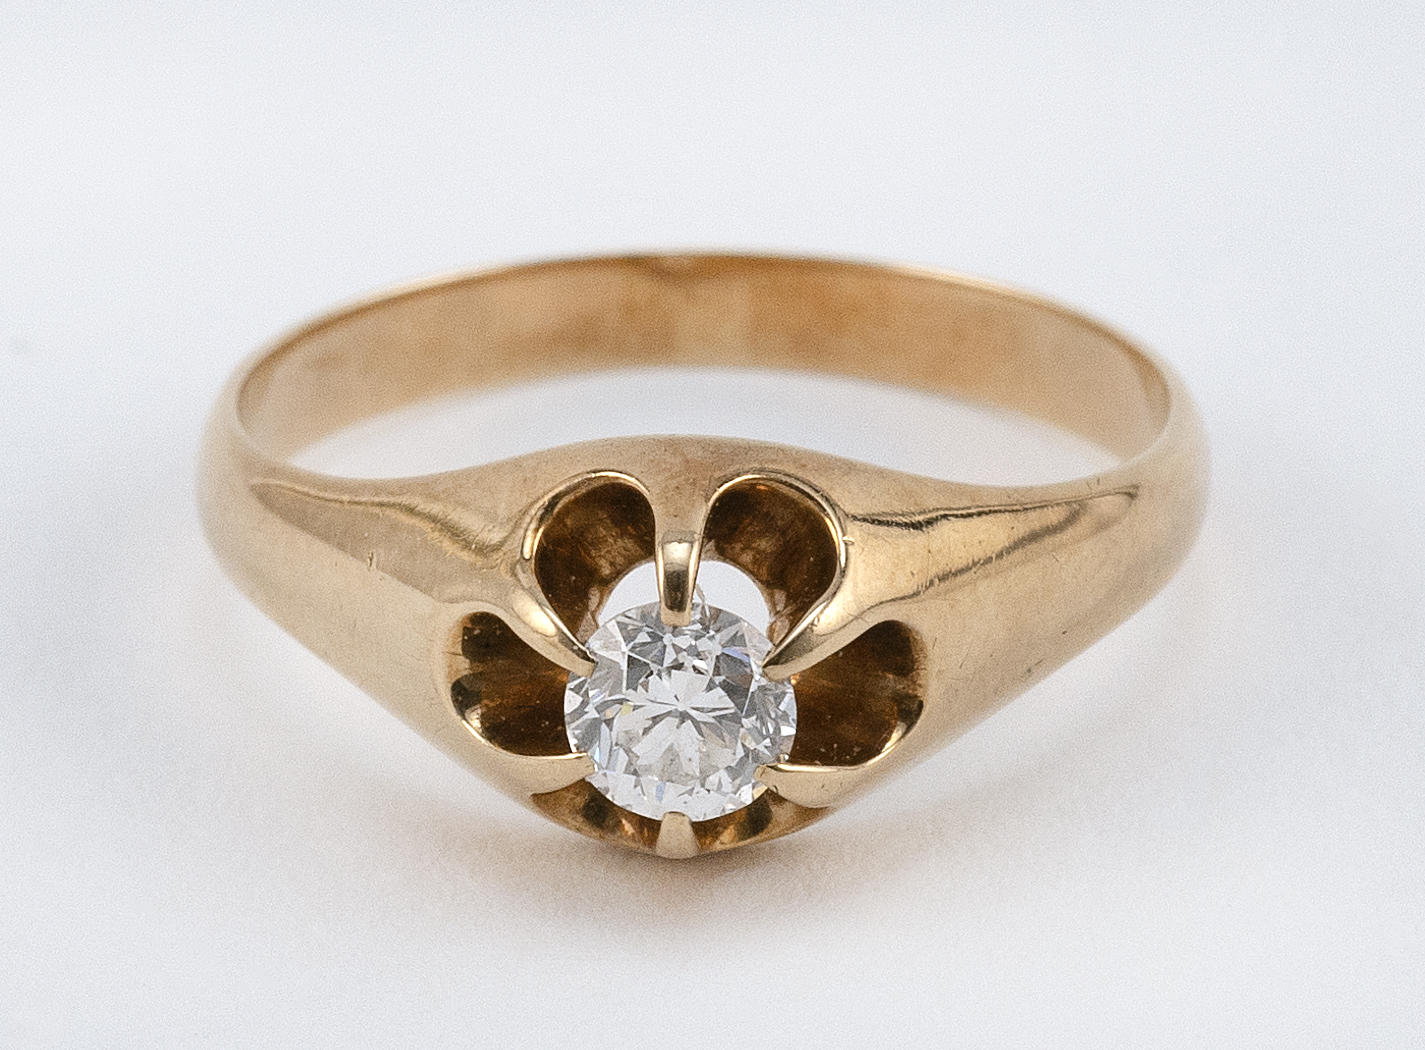 VINTAGE 14KT GOLD AND DIAMOND SOLITAIRE Approx. 2.72 total dwt.